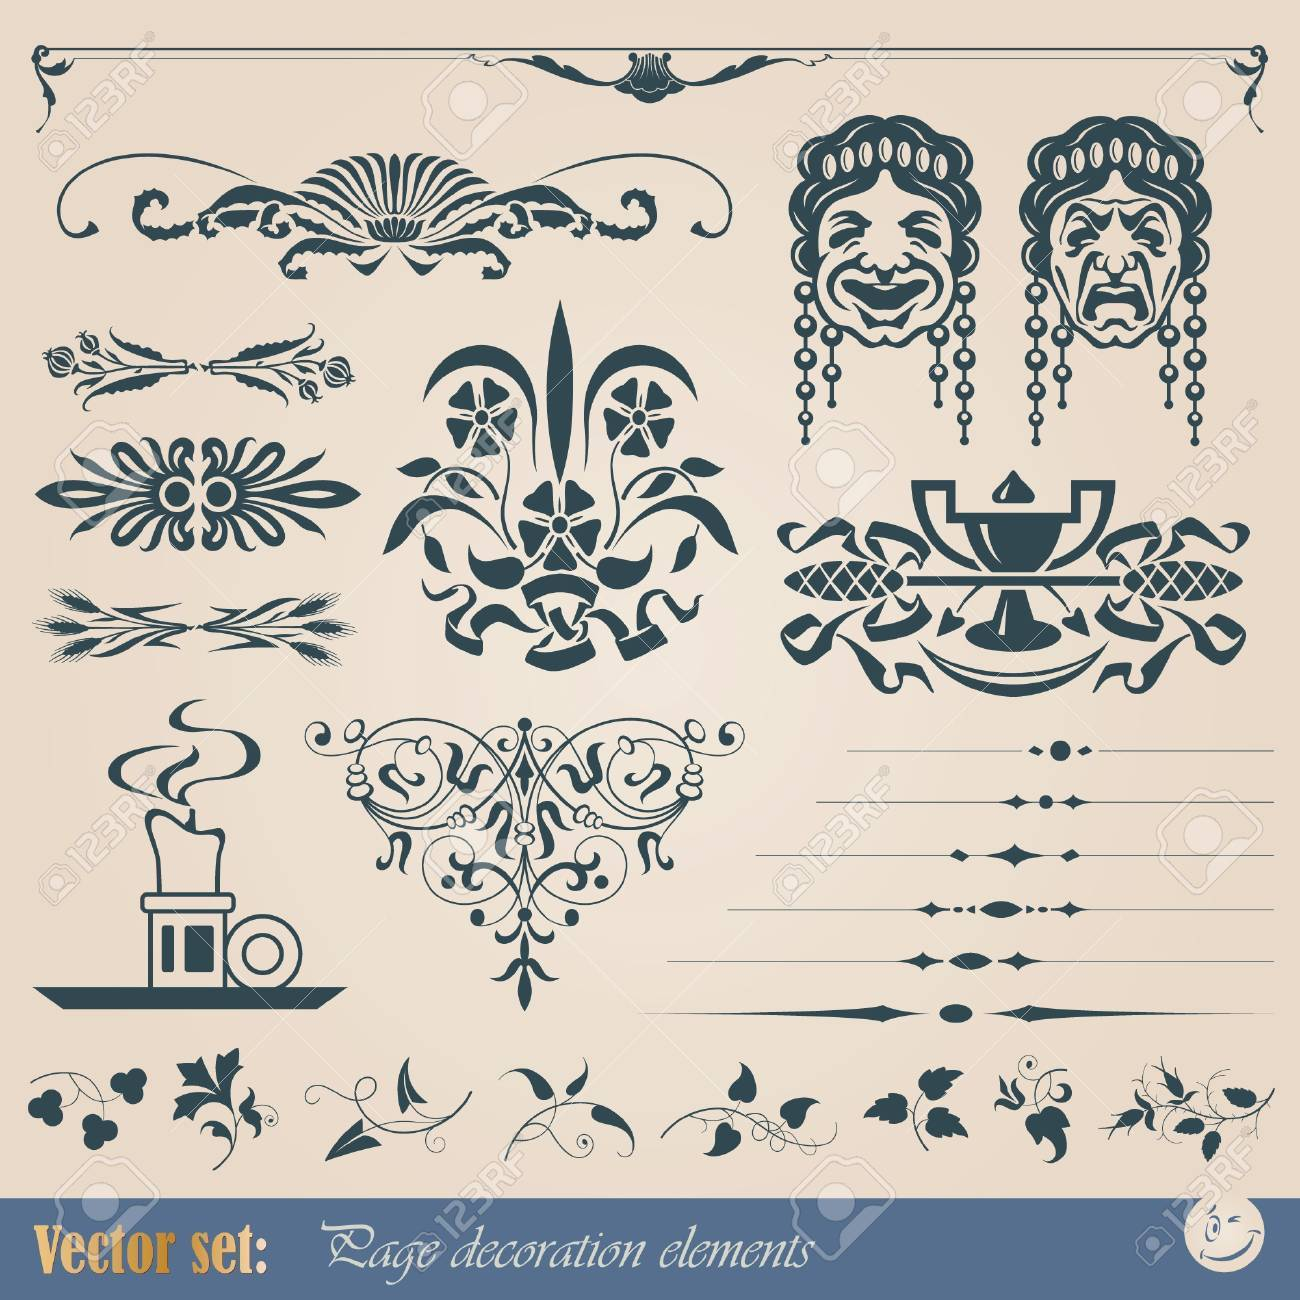 Decorative elements for design of printed materials Stock Vector - 10470472